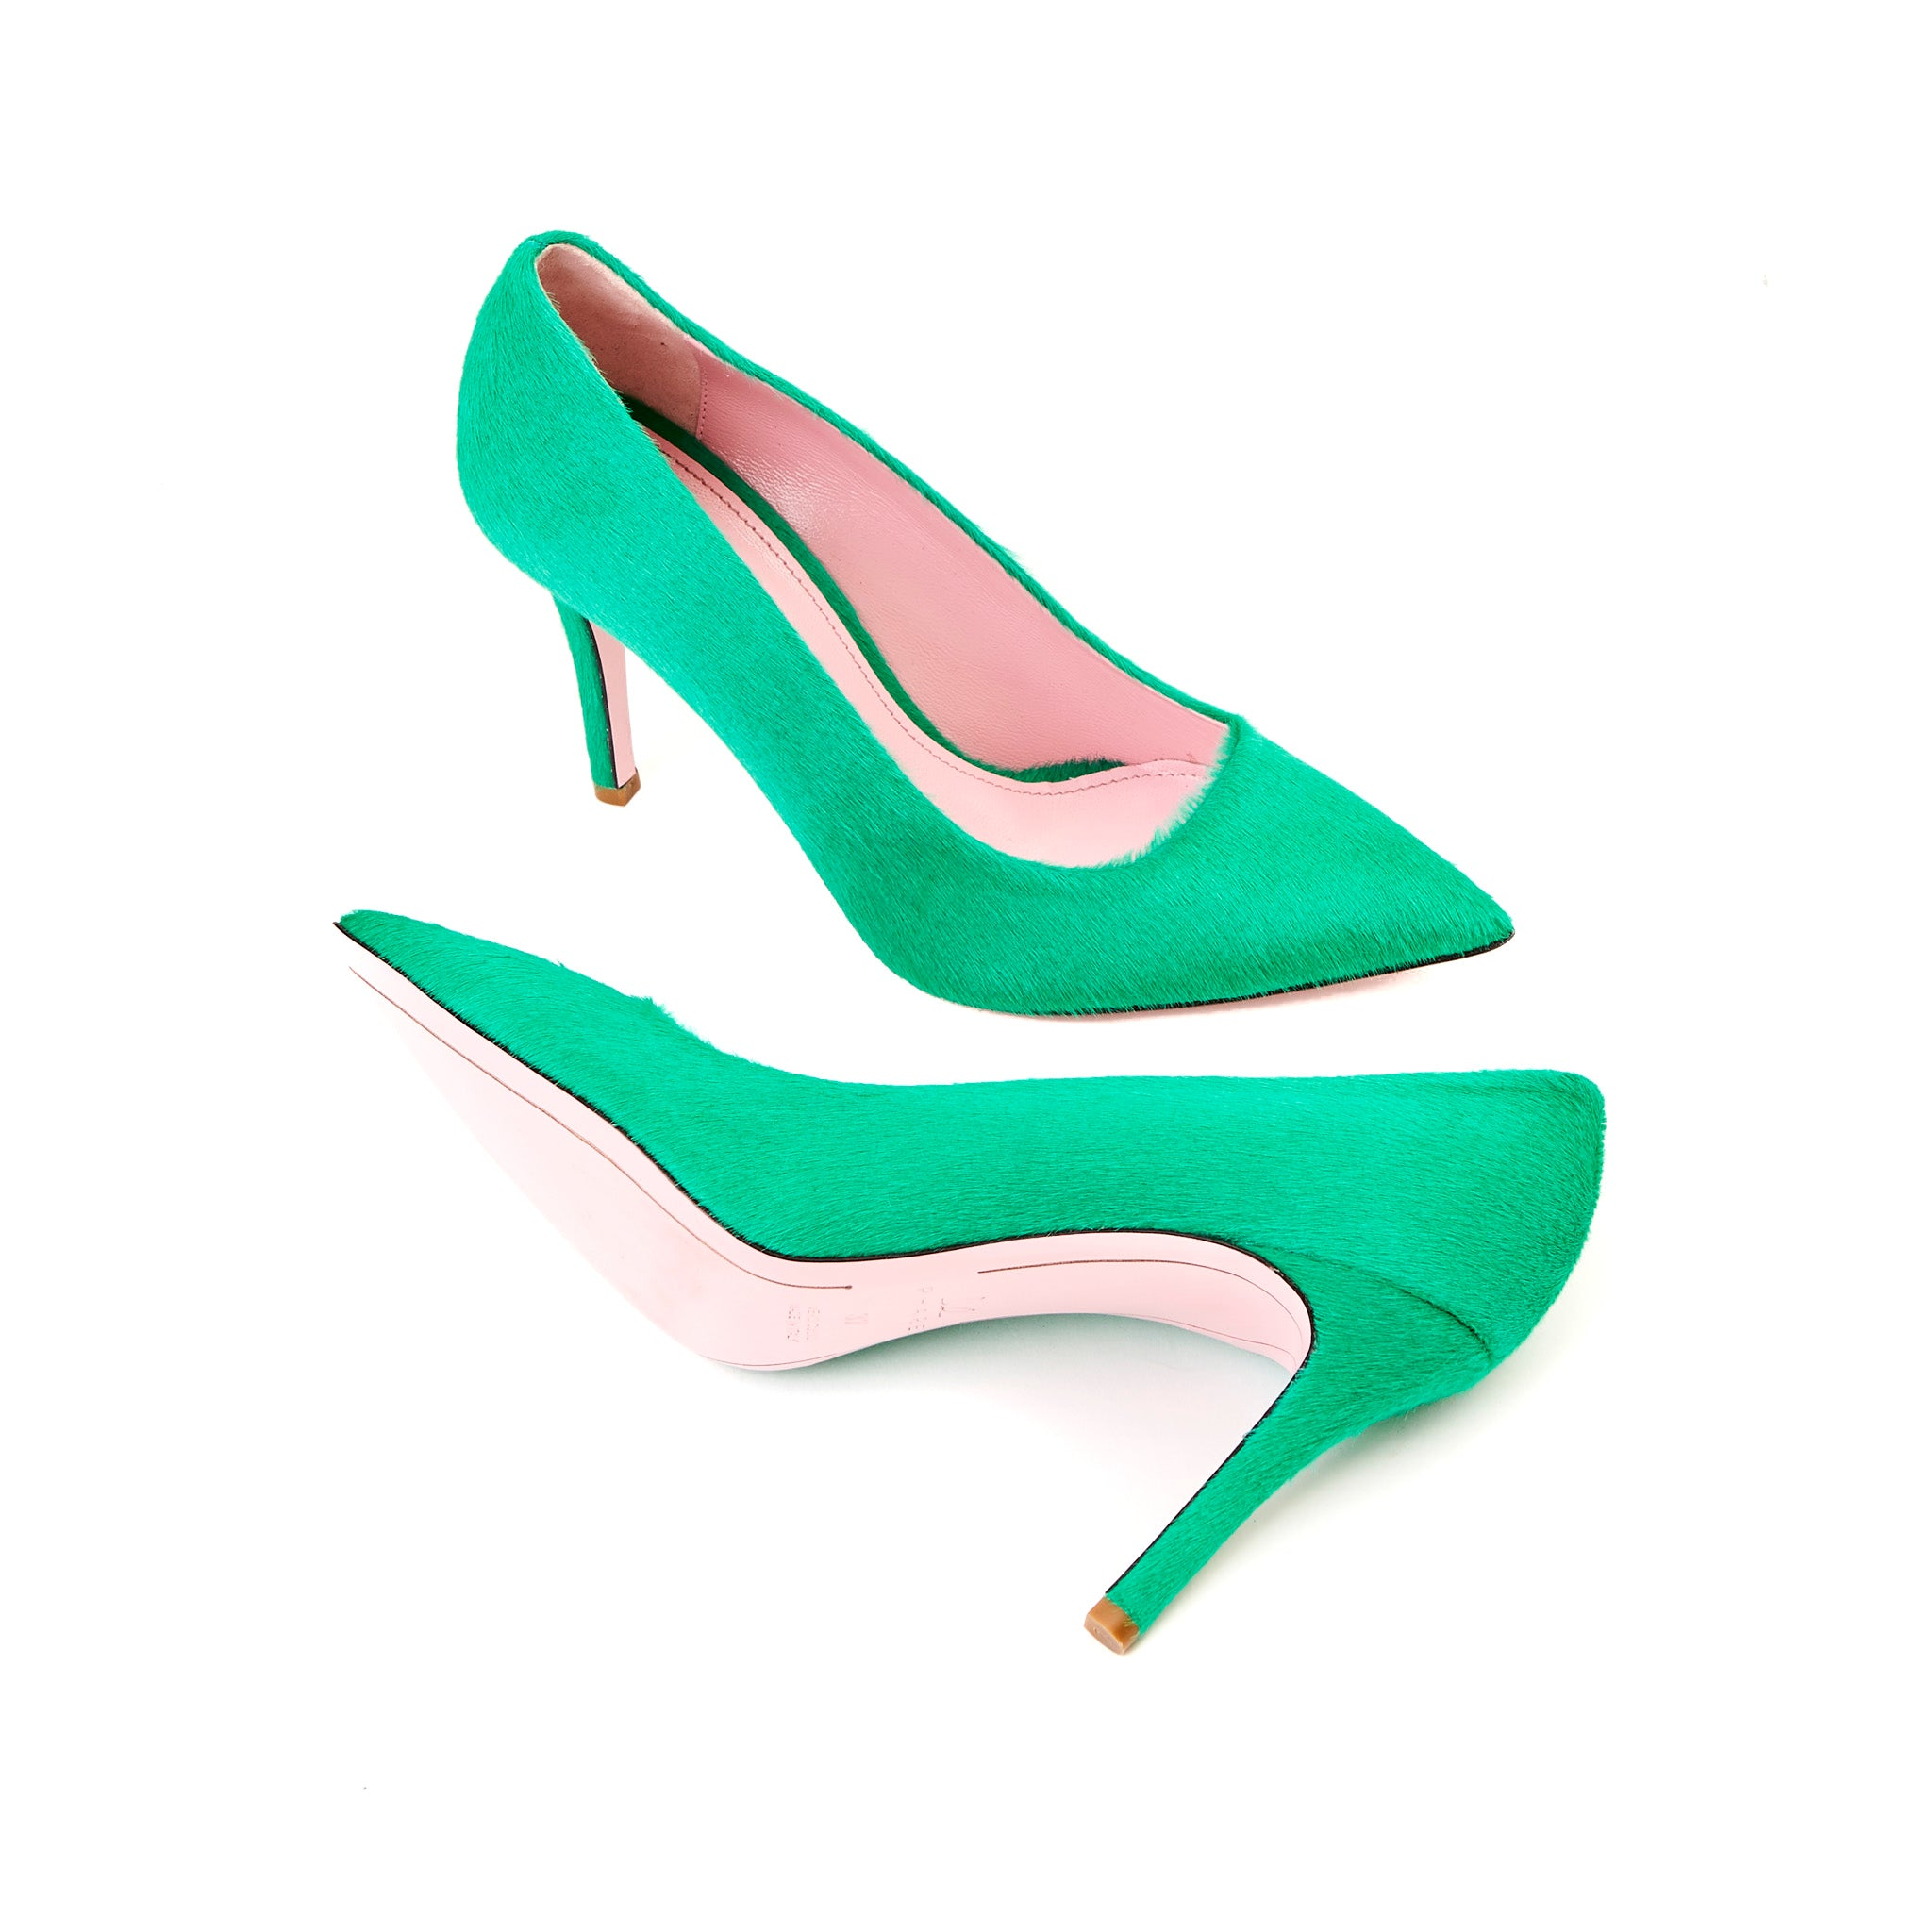 Phare slim heel pump in malachite pony hair sole view